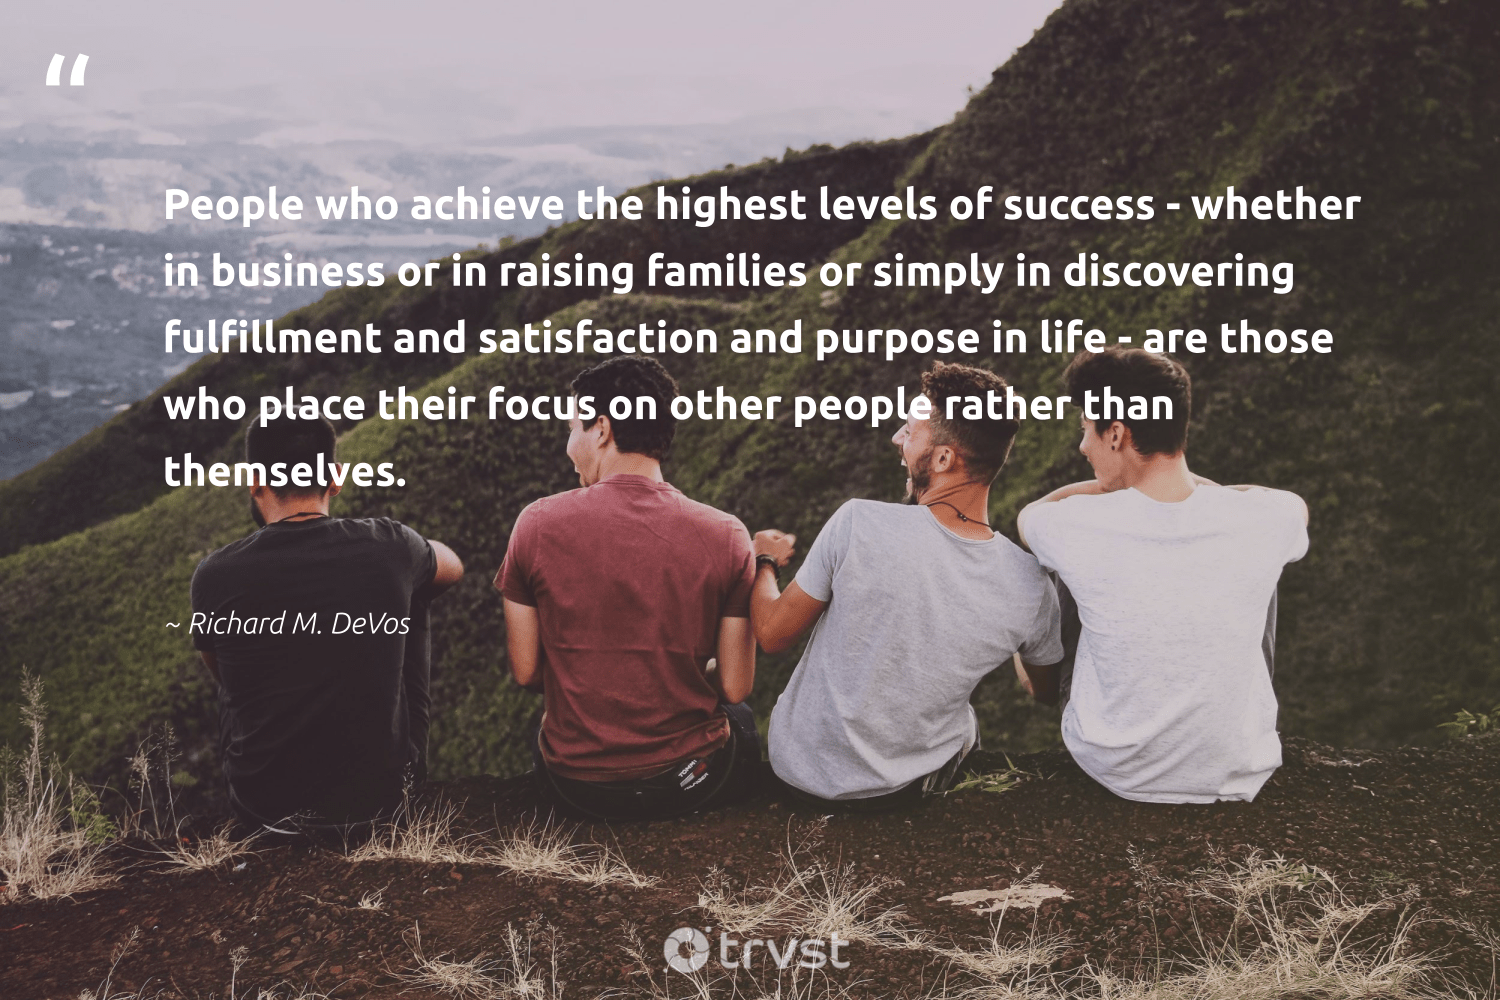 """""""People who achieve the highest levels of success - whether in business or in raising families or simply in discovering fulfillment and satisfaction and purpose in life - are those who place their focus on other people rather than themselves.""""  - Richard M. DeVos #trvst #quotes #families #purpose #success #focus #motivation #findingpupose #nevergiveup #futureofwork #takeaction #productive"""